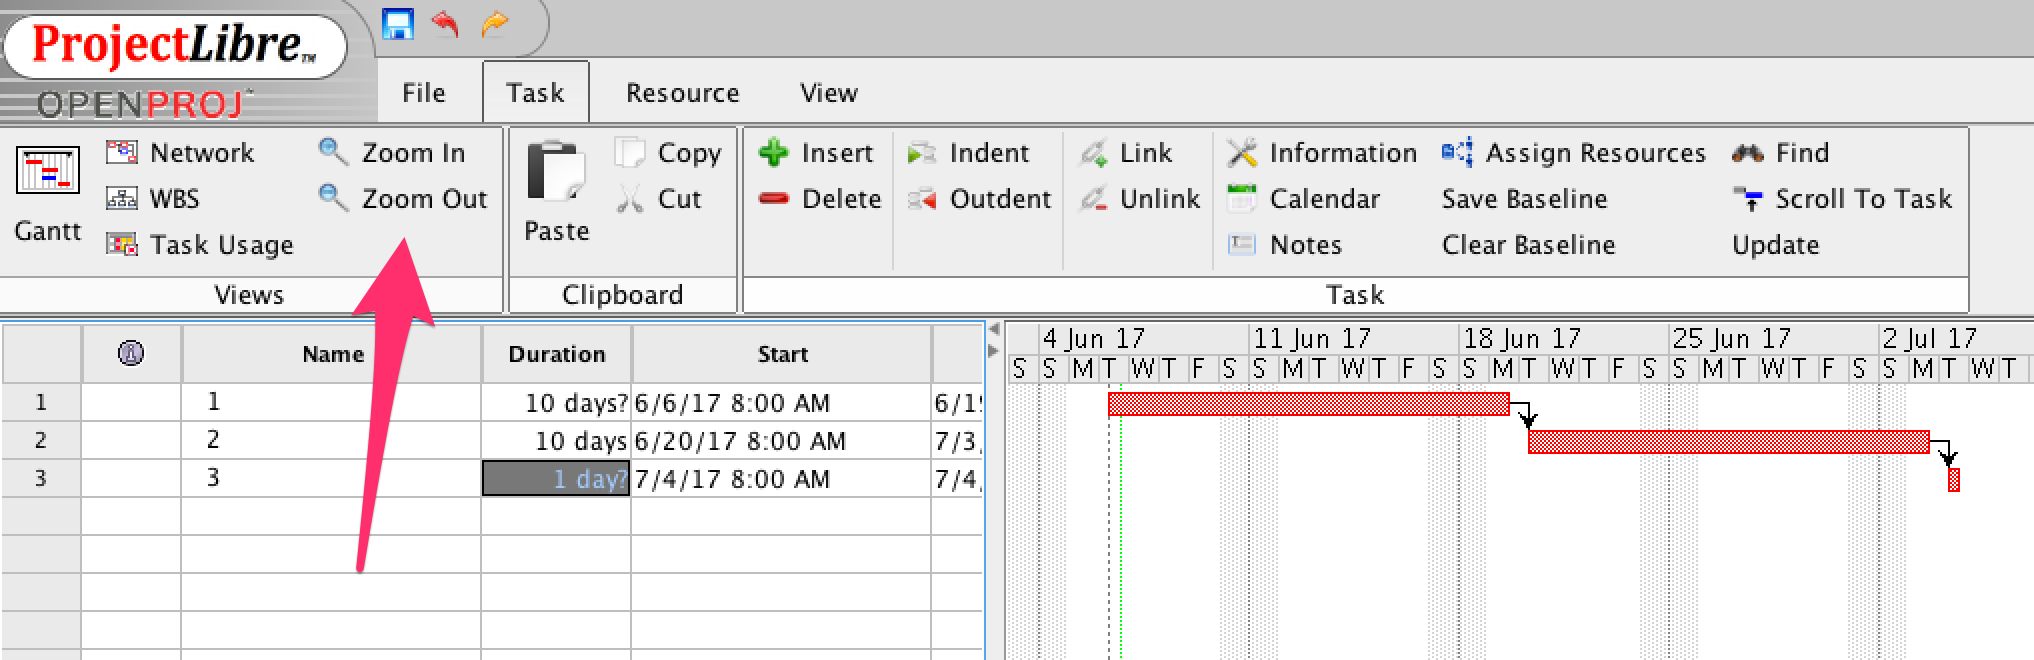 Gantt Time Scale Projectlibre